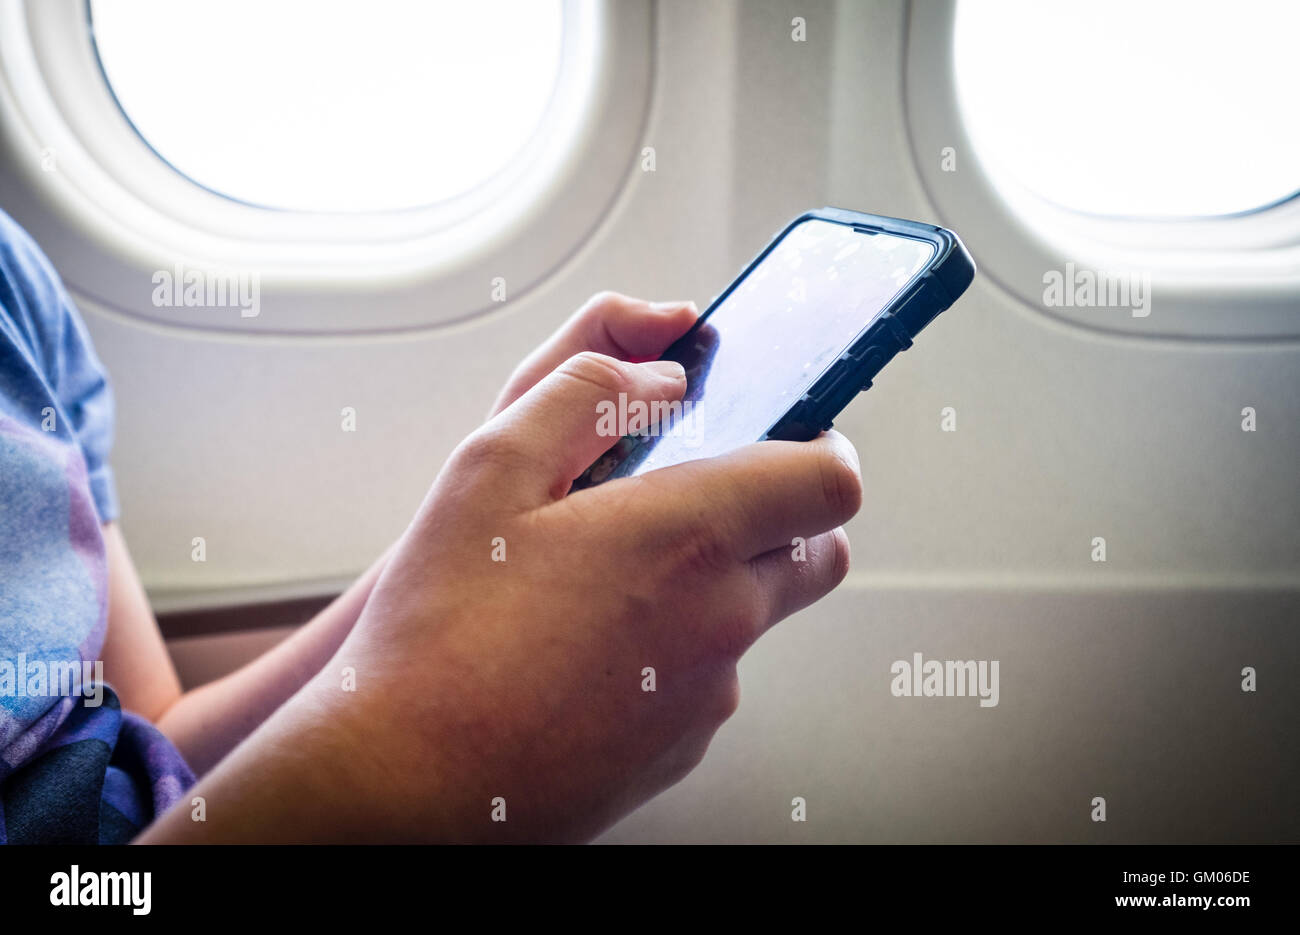 A teenage boy using his mobile phone during the flight on a plane - Stock Image